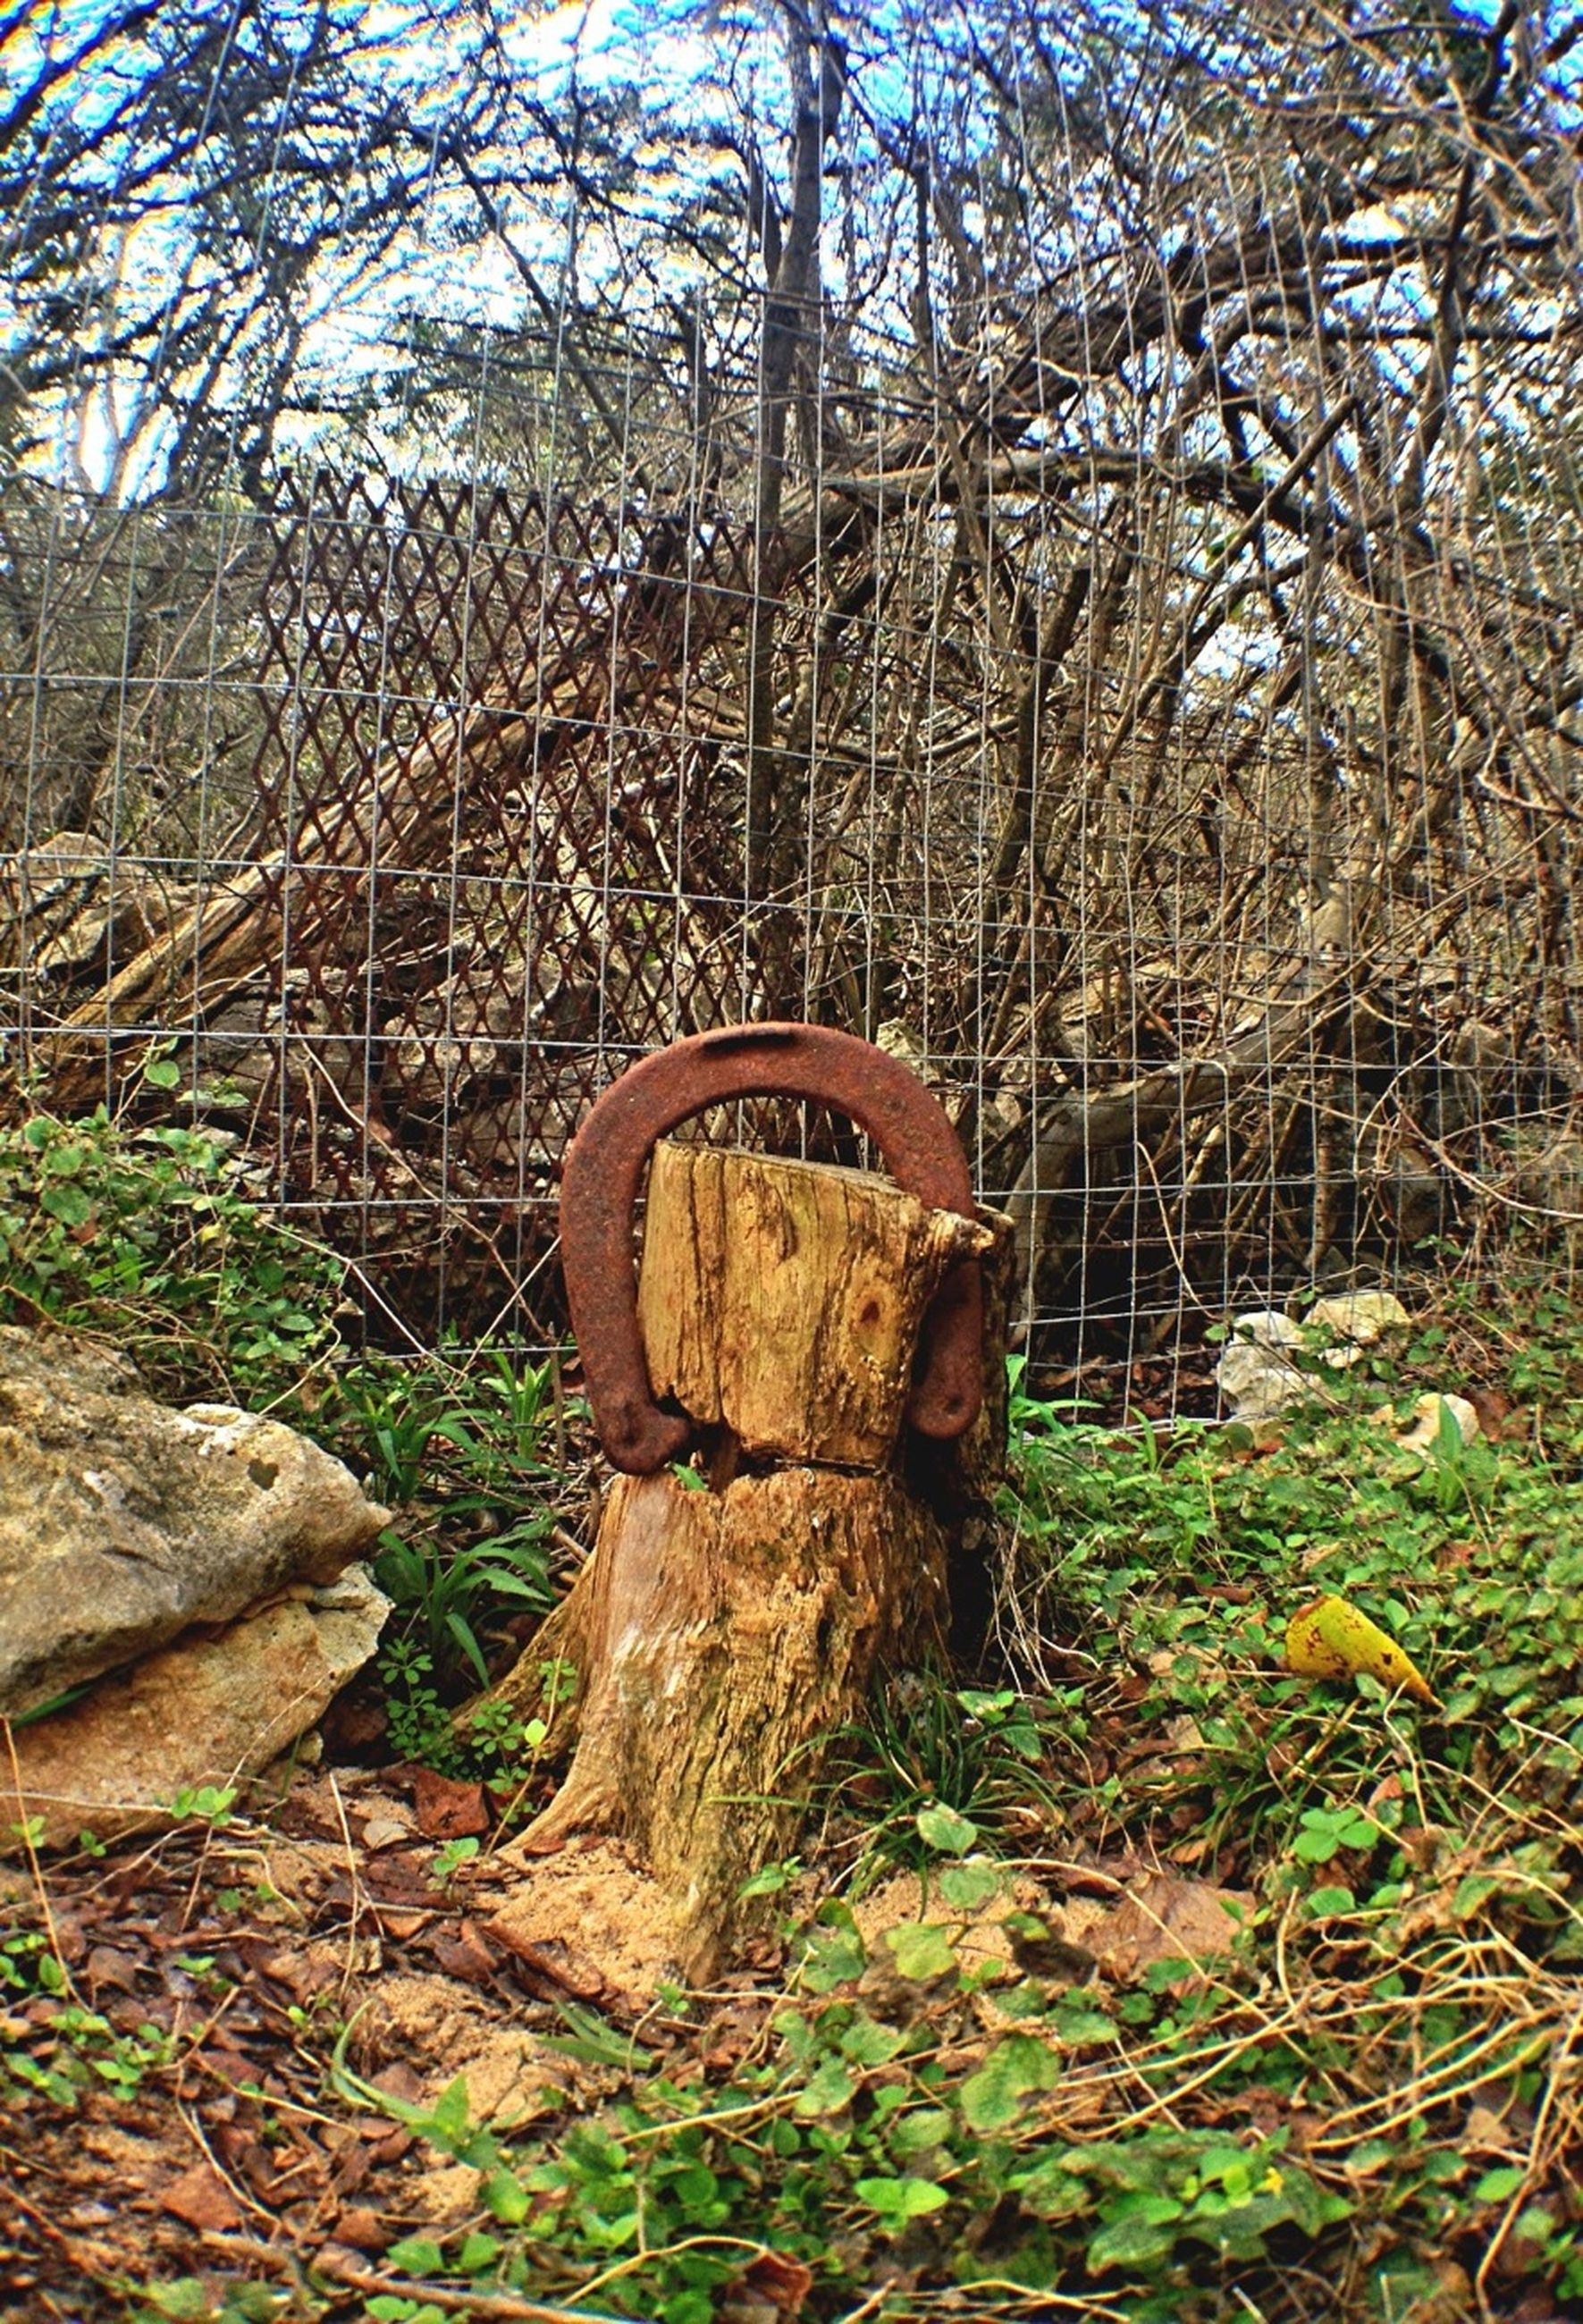 grass, tree, growth, field, tranquility, plant, nature, wood - material, abandoned, forest, tree trunk, day, outdoors, tranquil scene, old, no people, landscape, dry, damaged, grassy